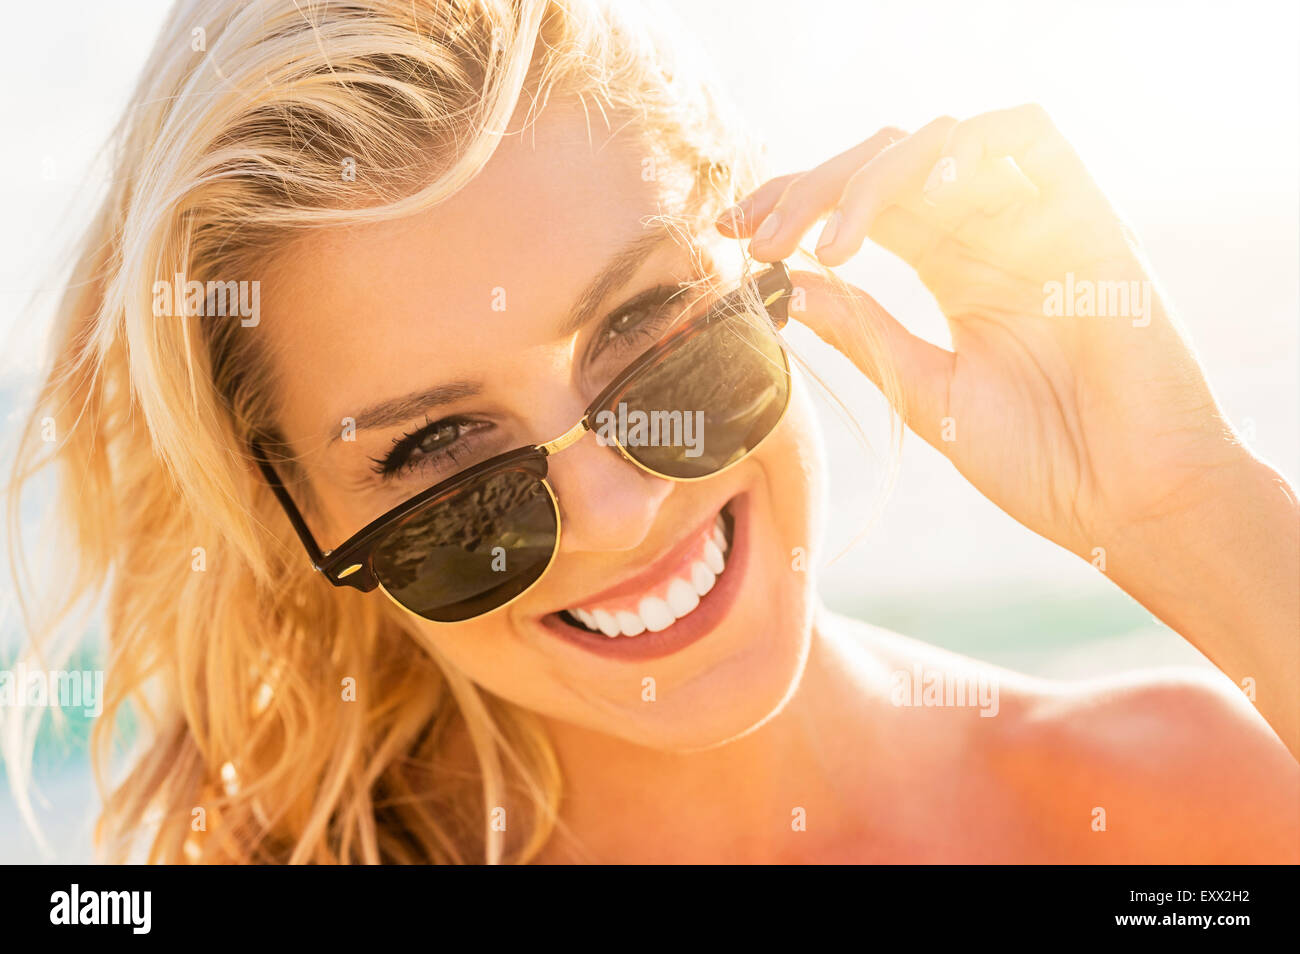 Young woman wearing sunglasses - Stock Image